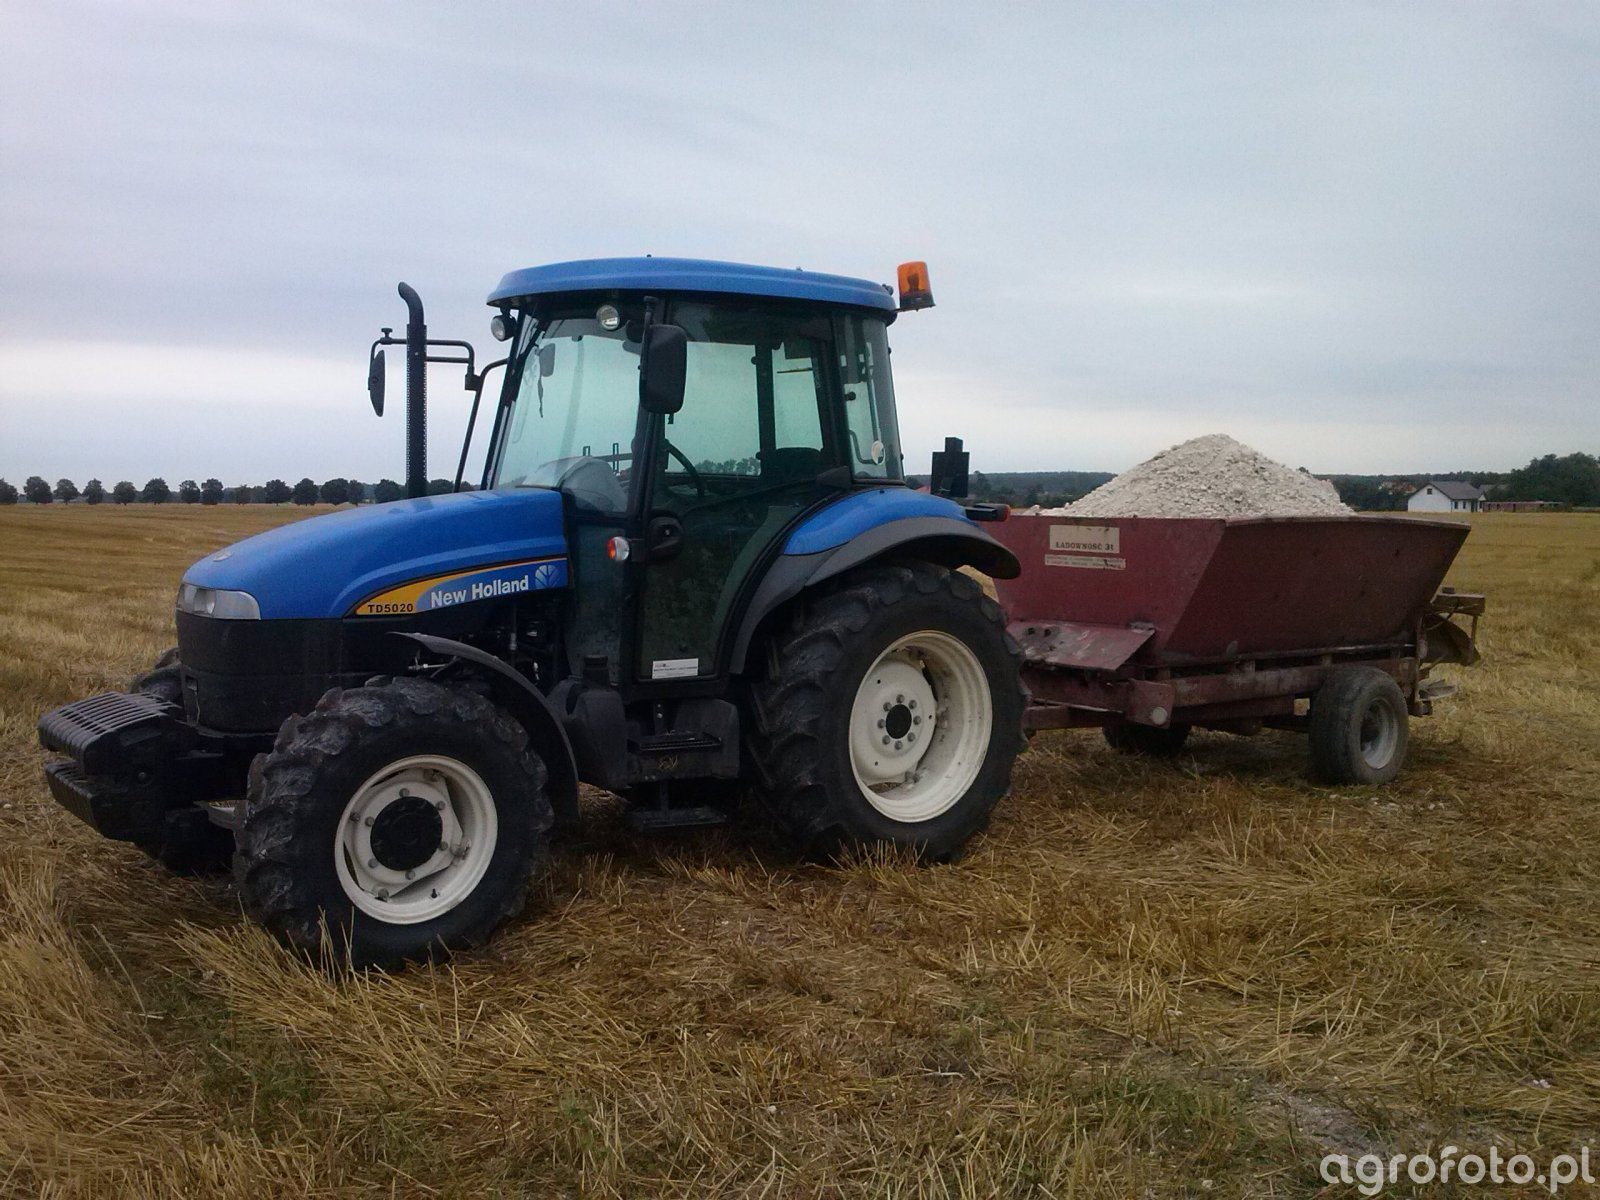 New Holland TD 5020